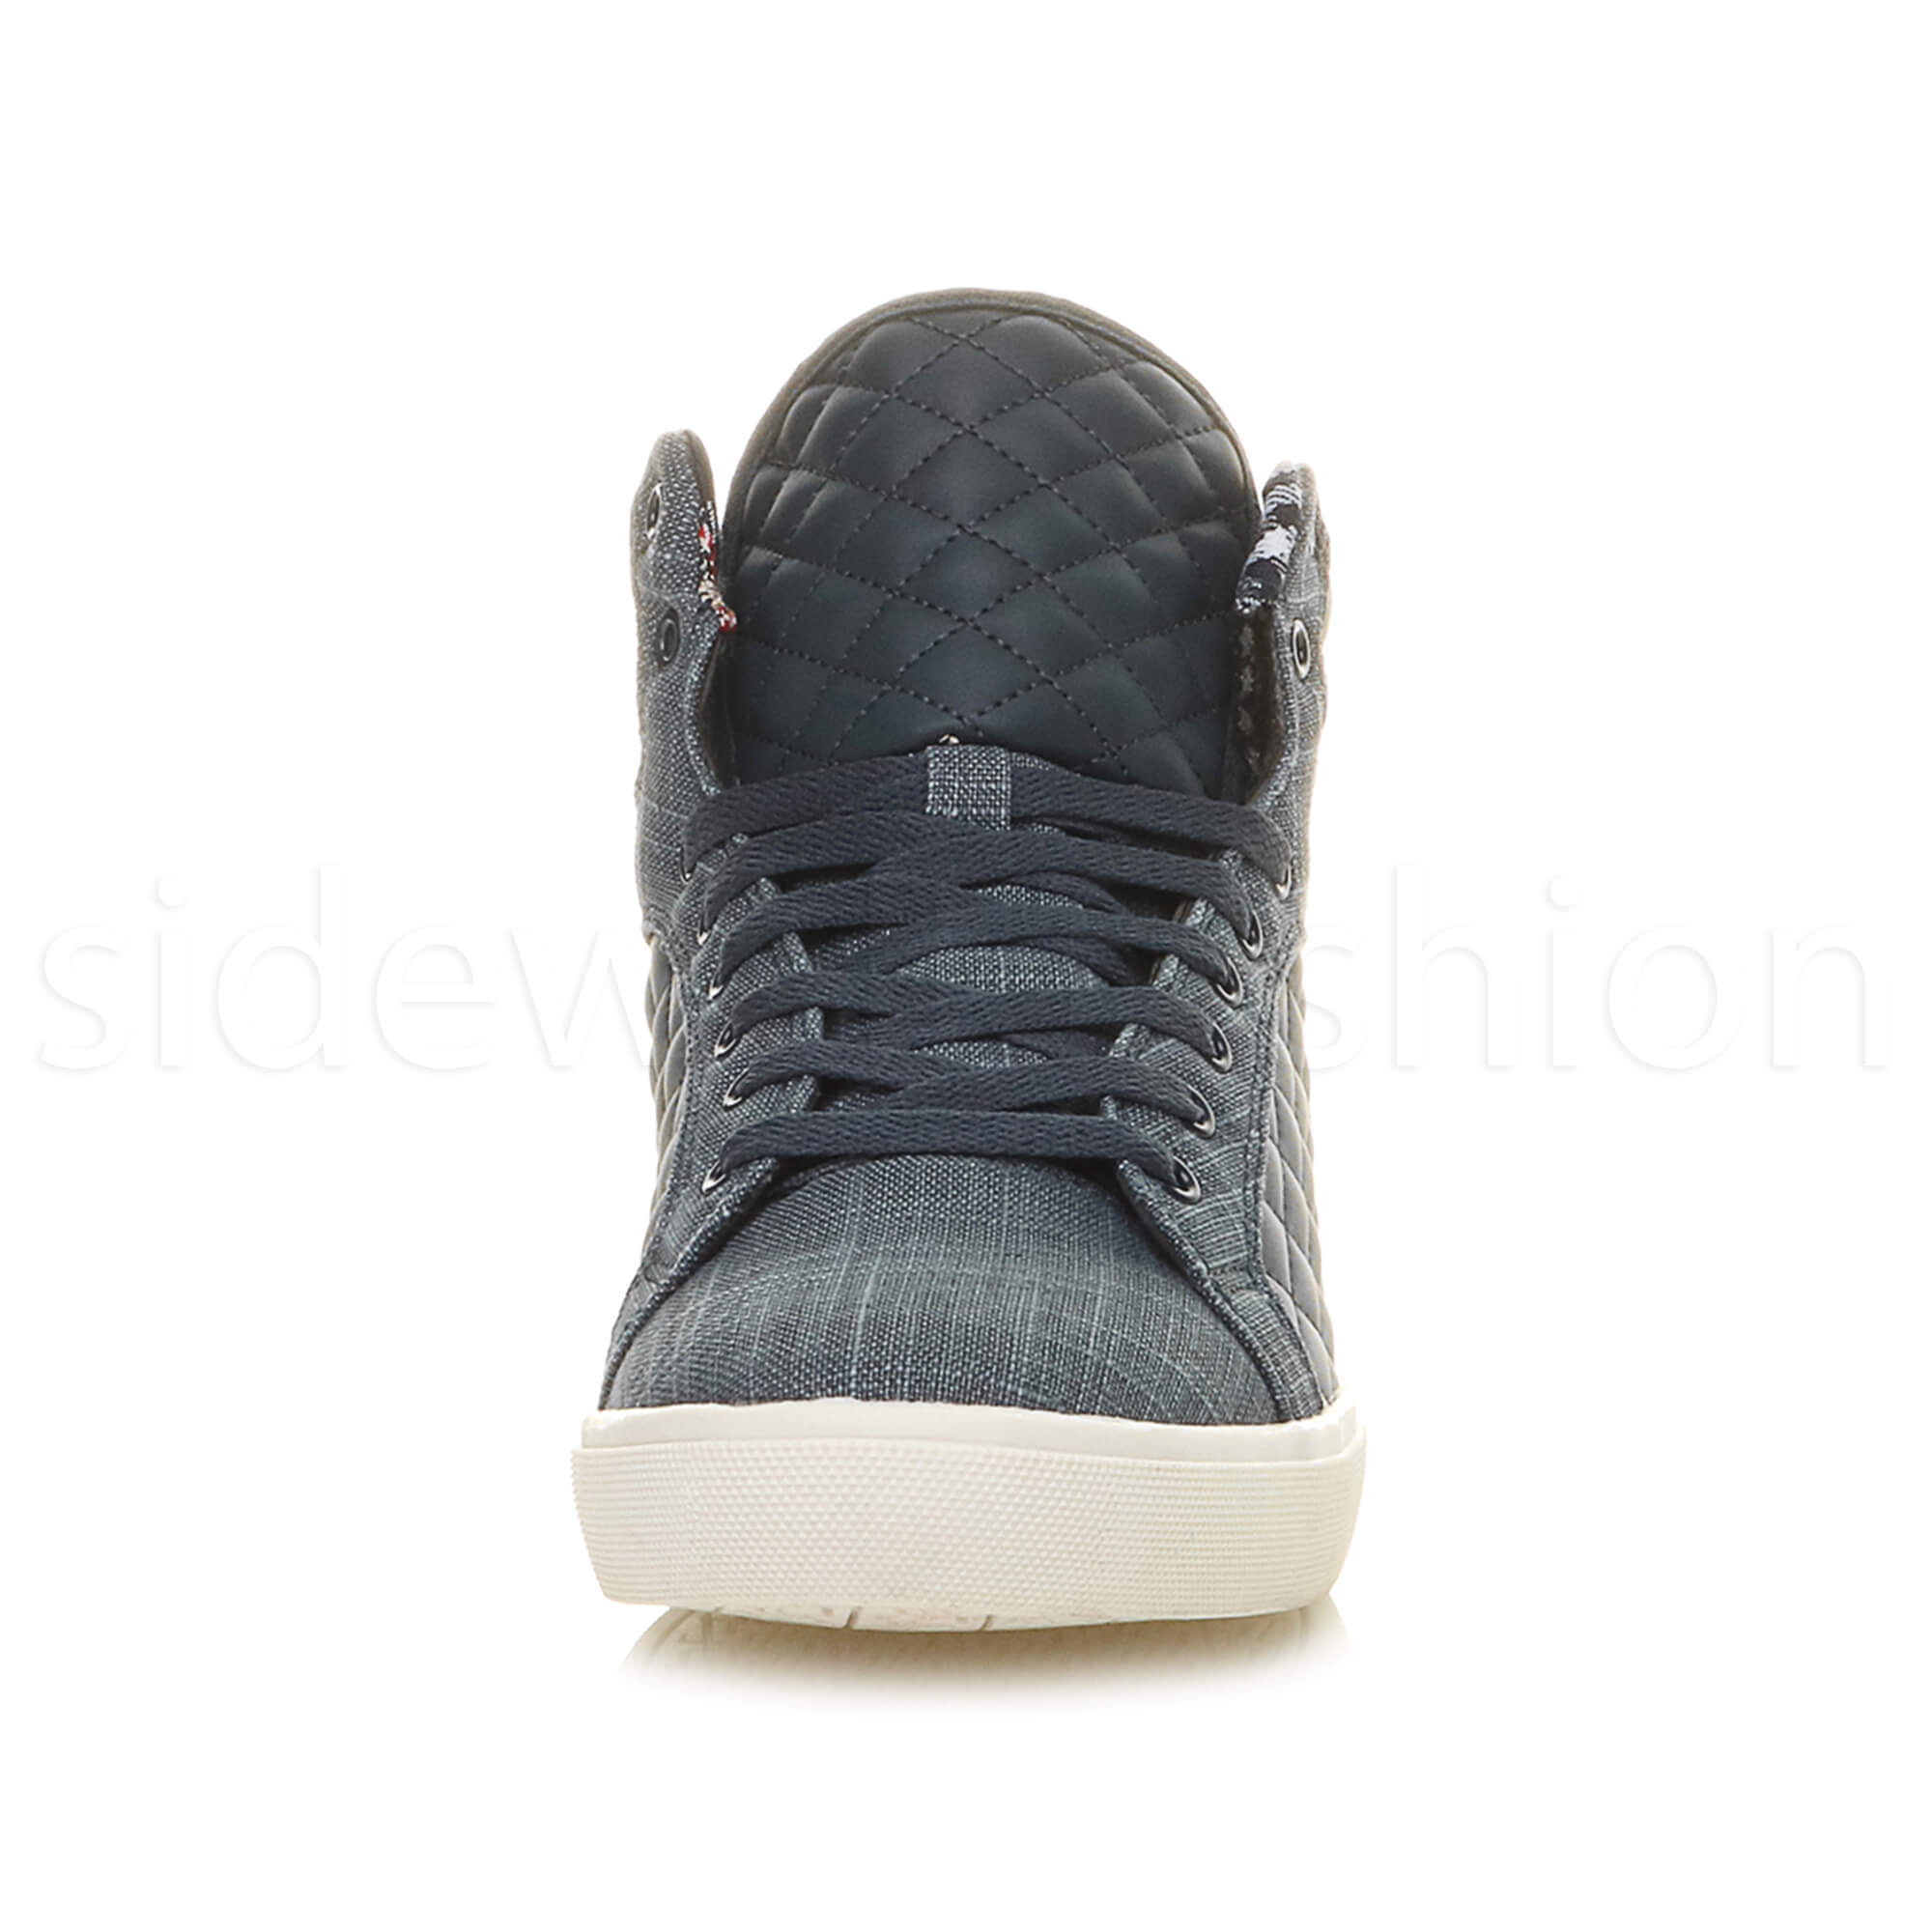 Mens-flat-lace-up-quilted-casual-hi-high-top-ankle-boots-trainers-sneakers-size thumbnail 28